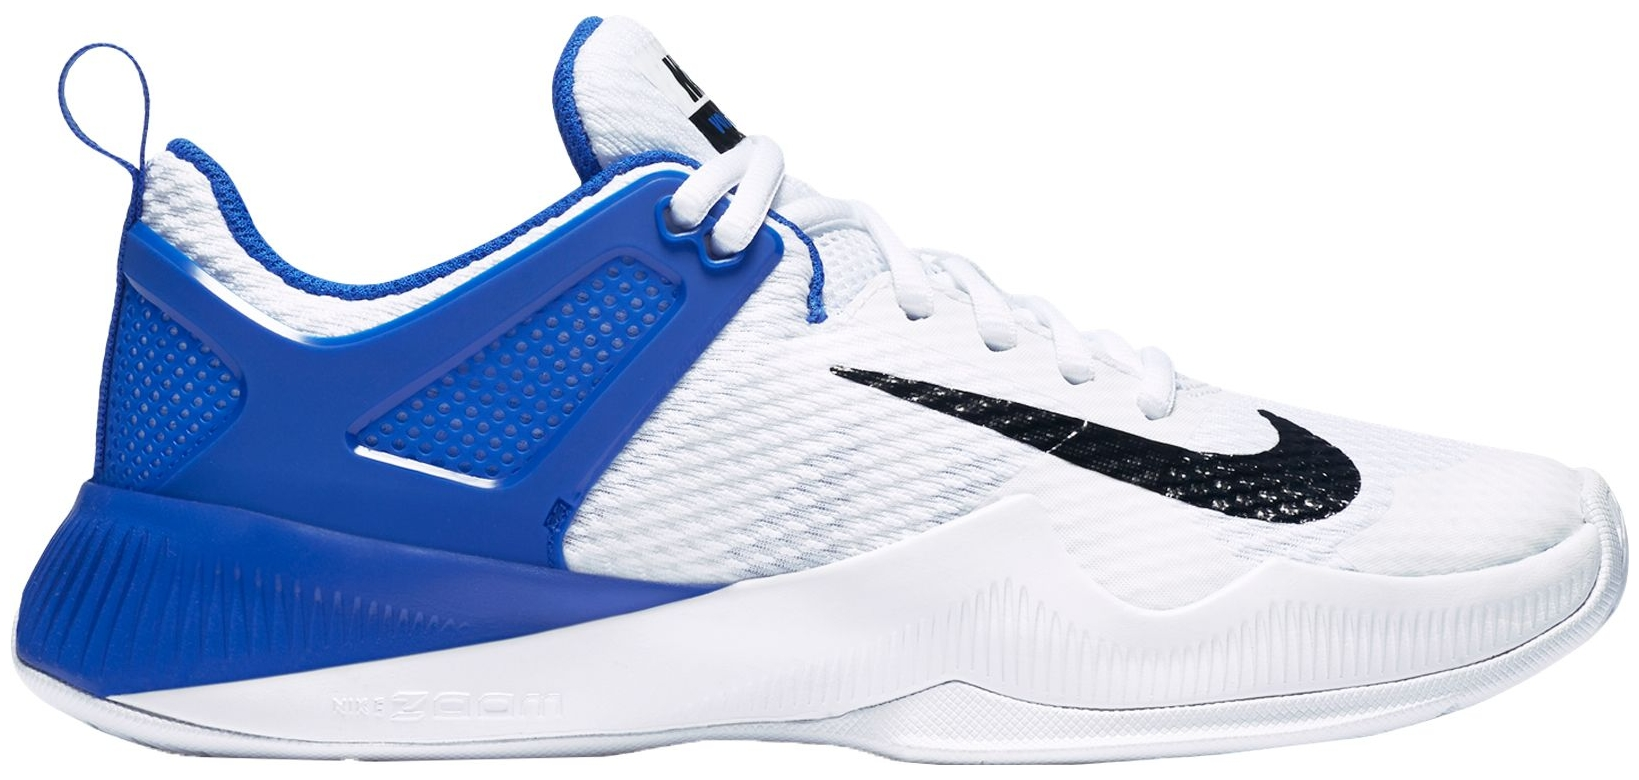 Nike Women's Air Zoom HyperAce Volleyball Shoes (White/Black/Blue, 7.0)